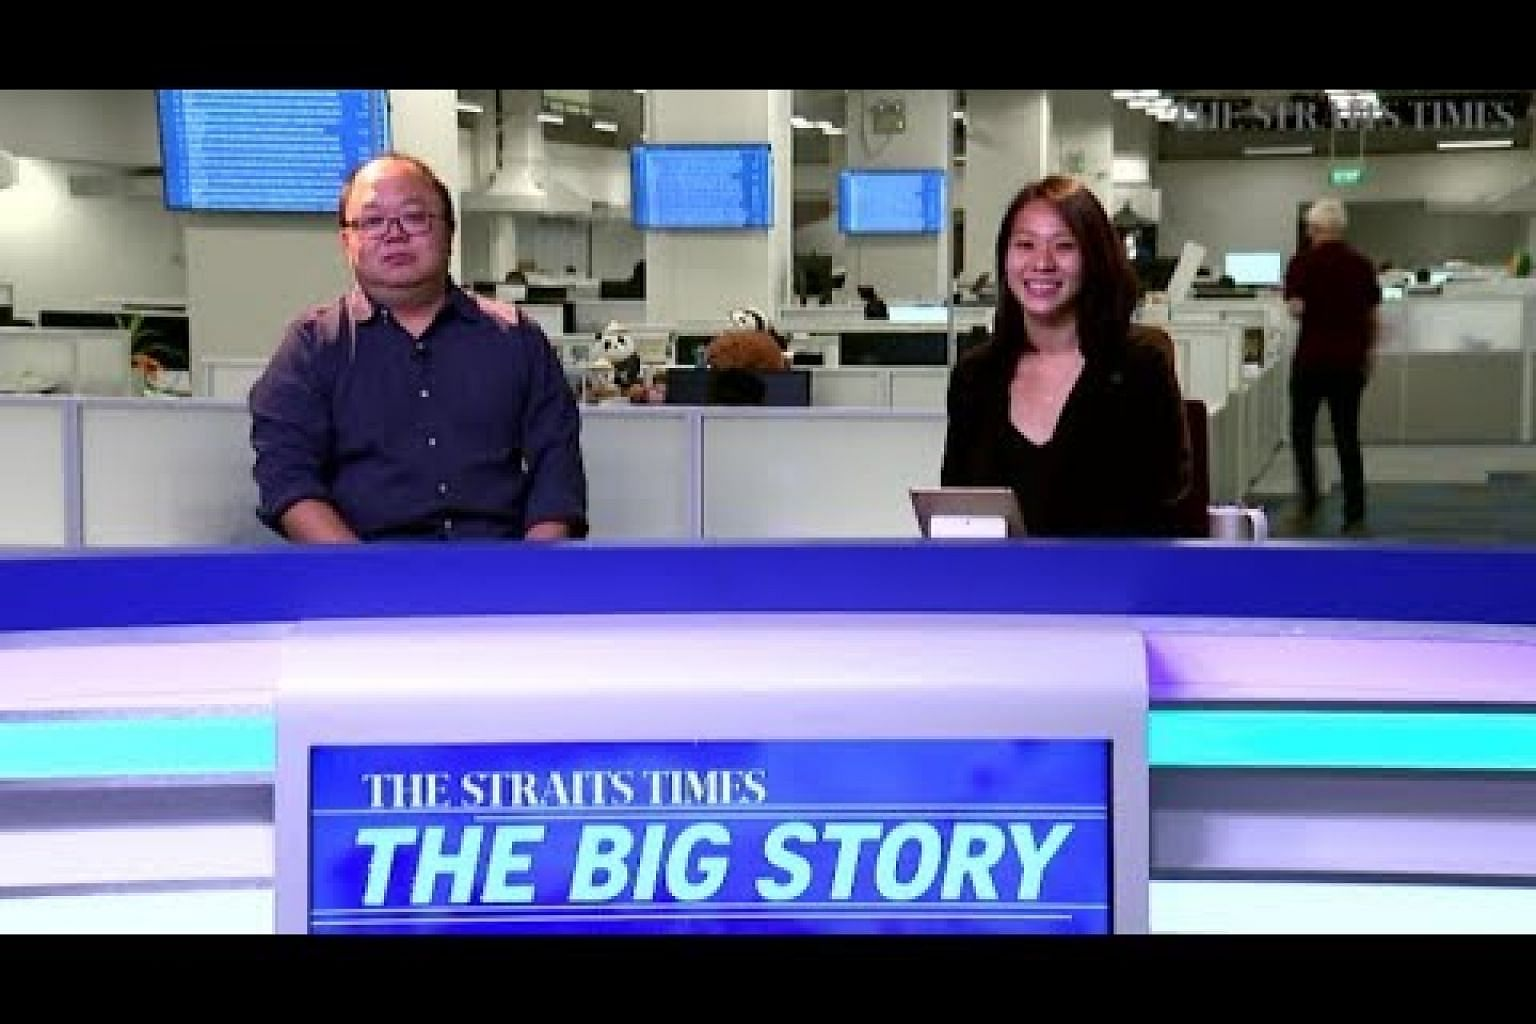 The Big Story: Tech giants and data privacy